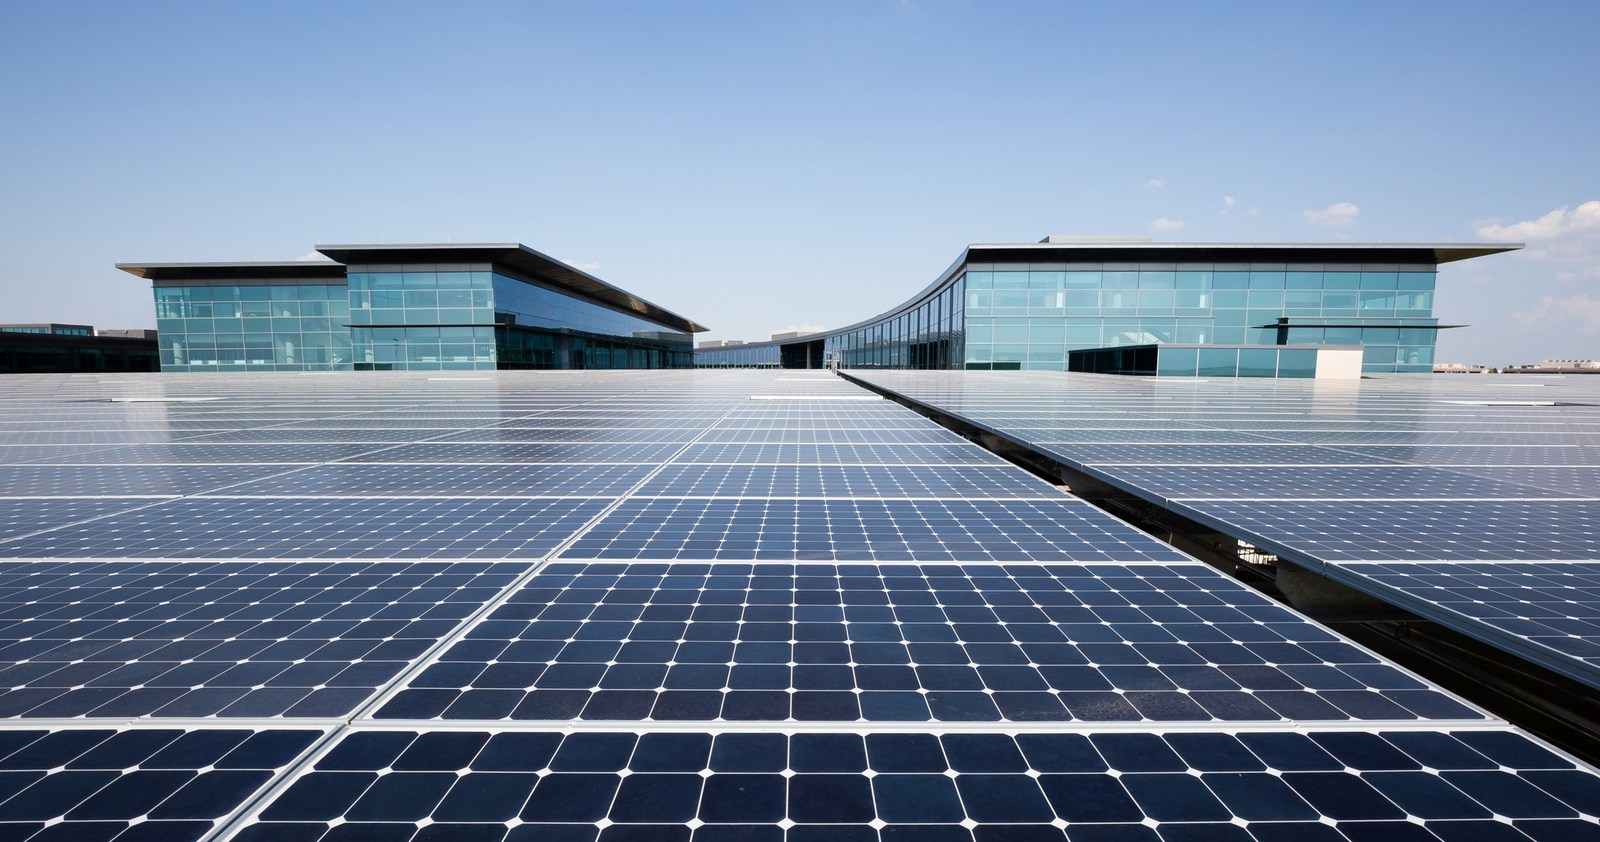 Sunpower Completes 8 79 Mw Project For New Toyota